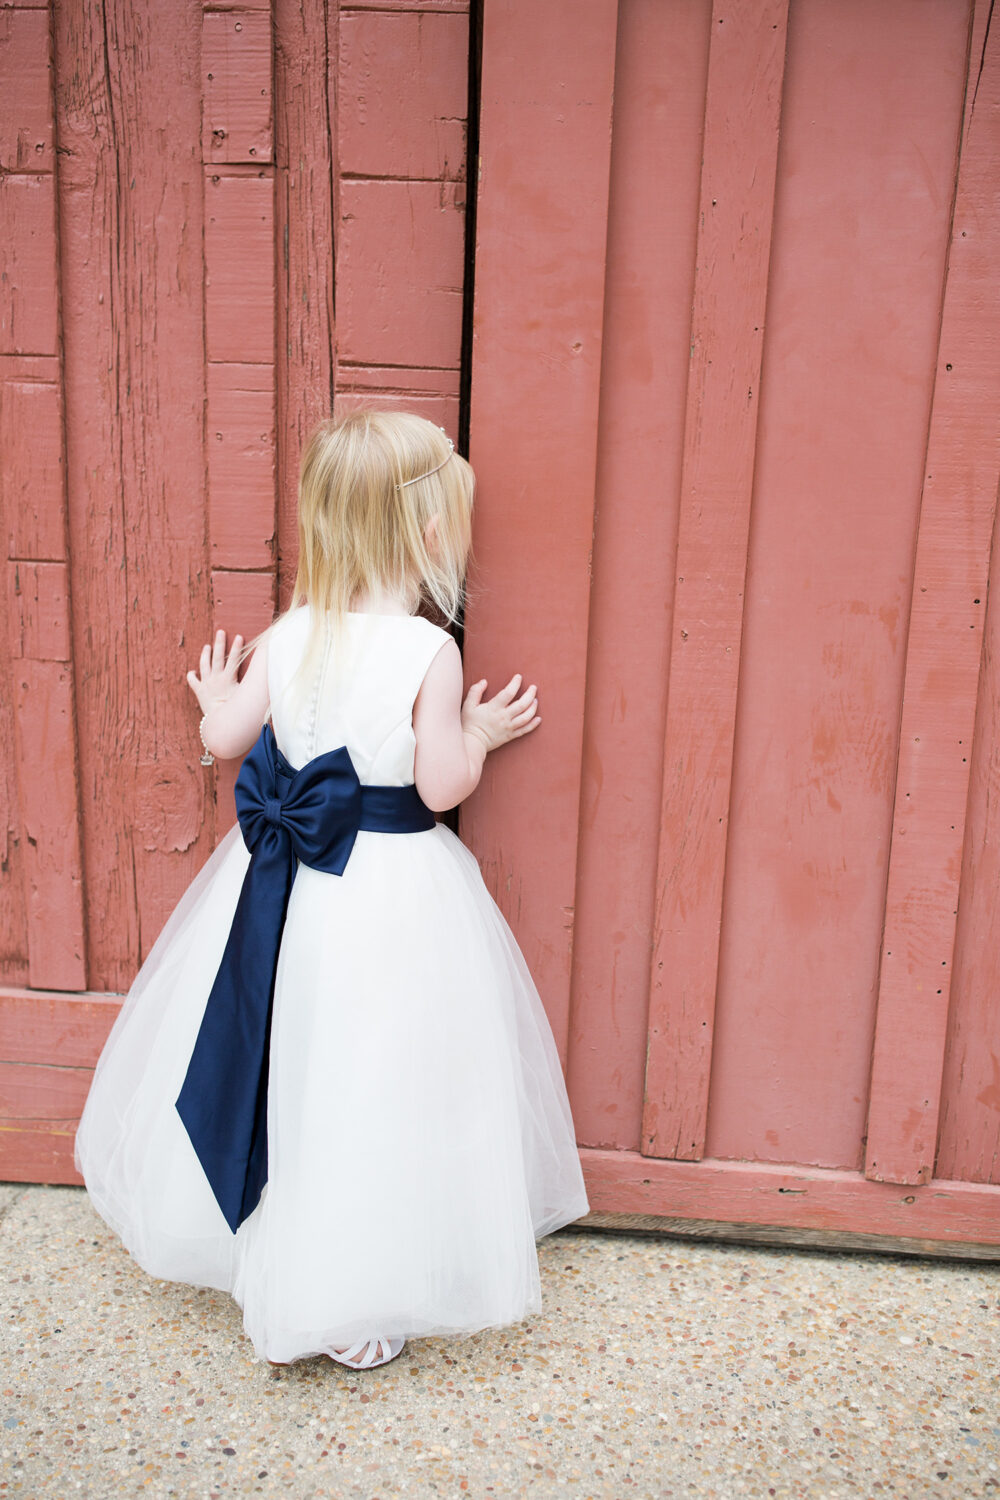 Fall Wedding Dresses: Flower Girl Dress and Wedding Guest Ideas ...